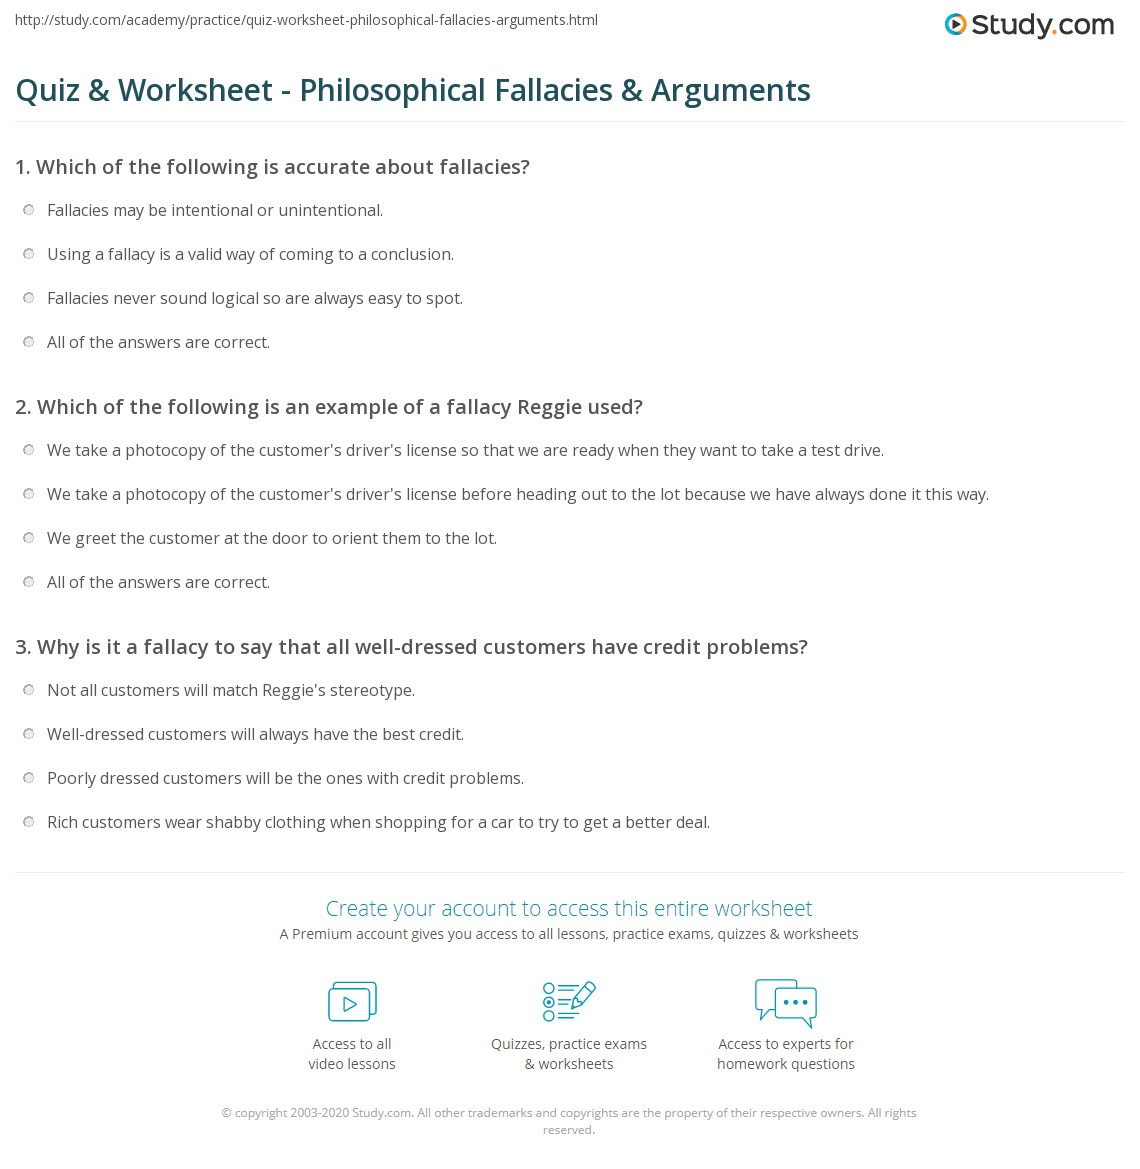 Quiz Worksheet Philosophical Fallacies Arguments – Logical Fallacies Worksheet